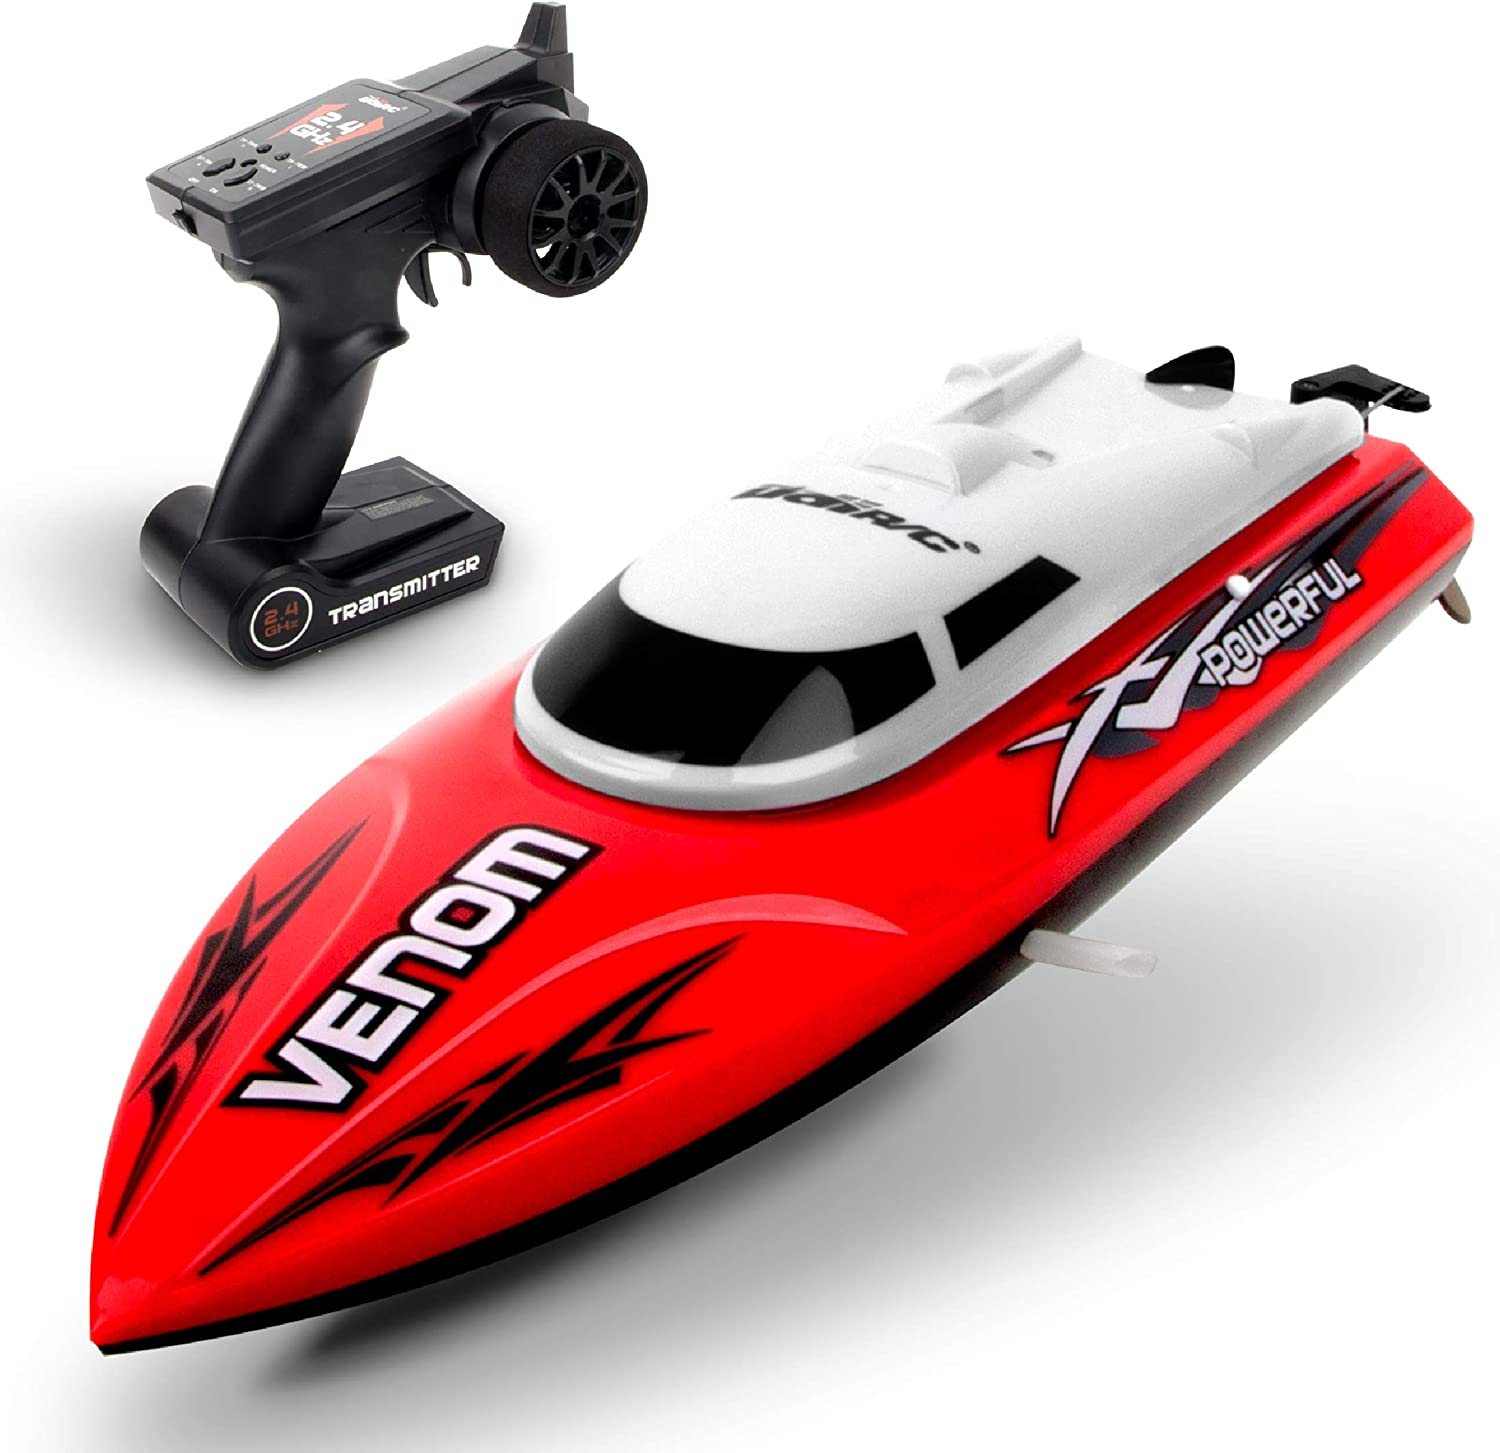 Top 5 Best RC Boat for Kids Reviews in 2020 2